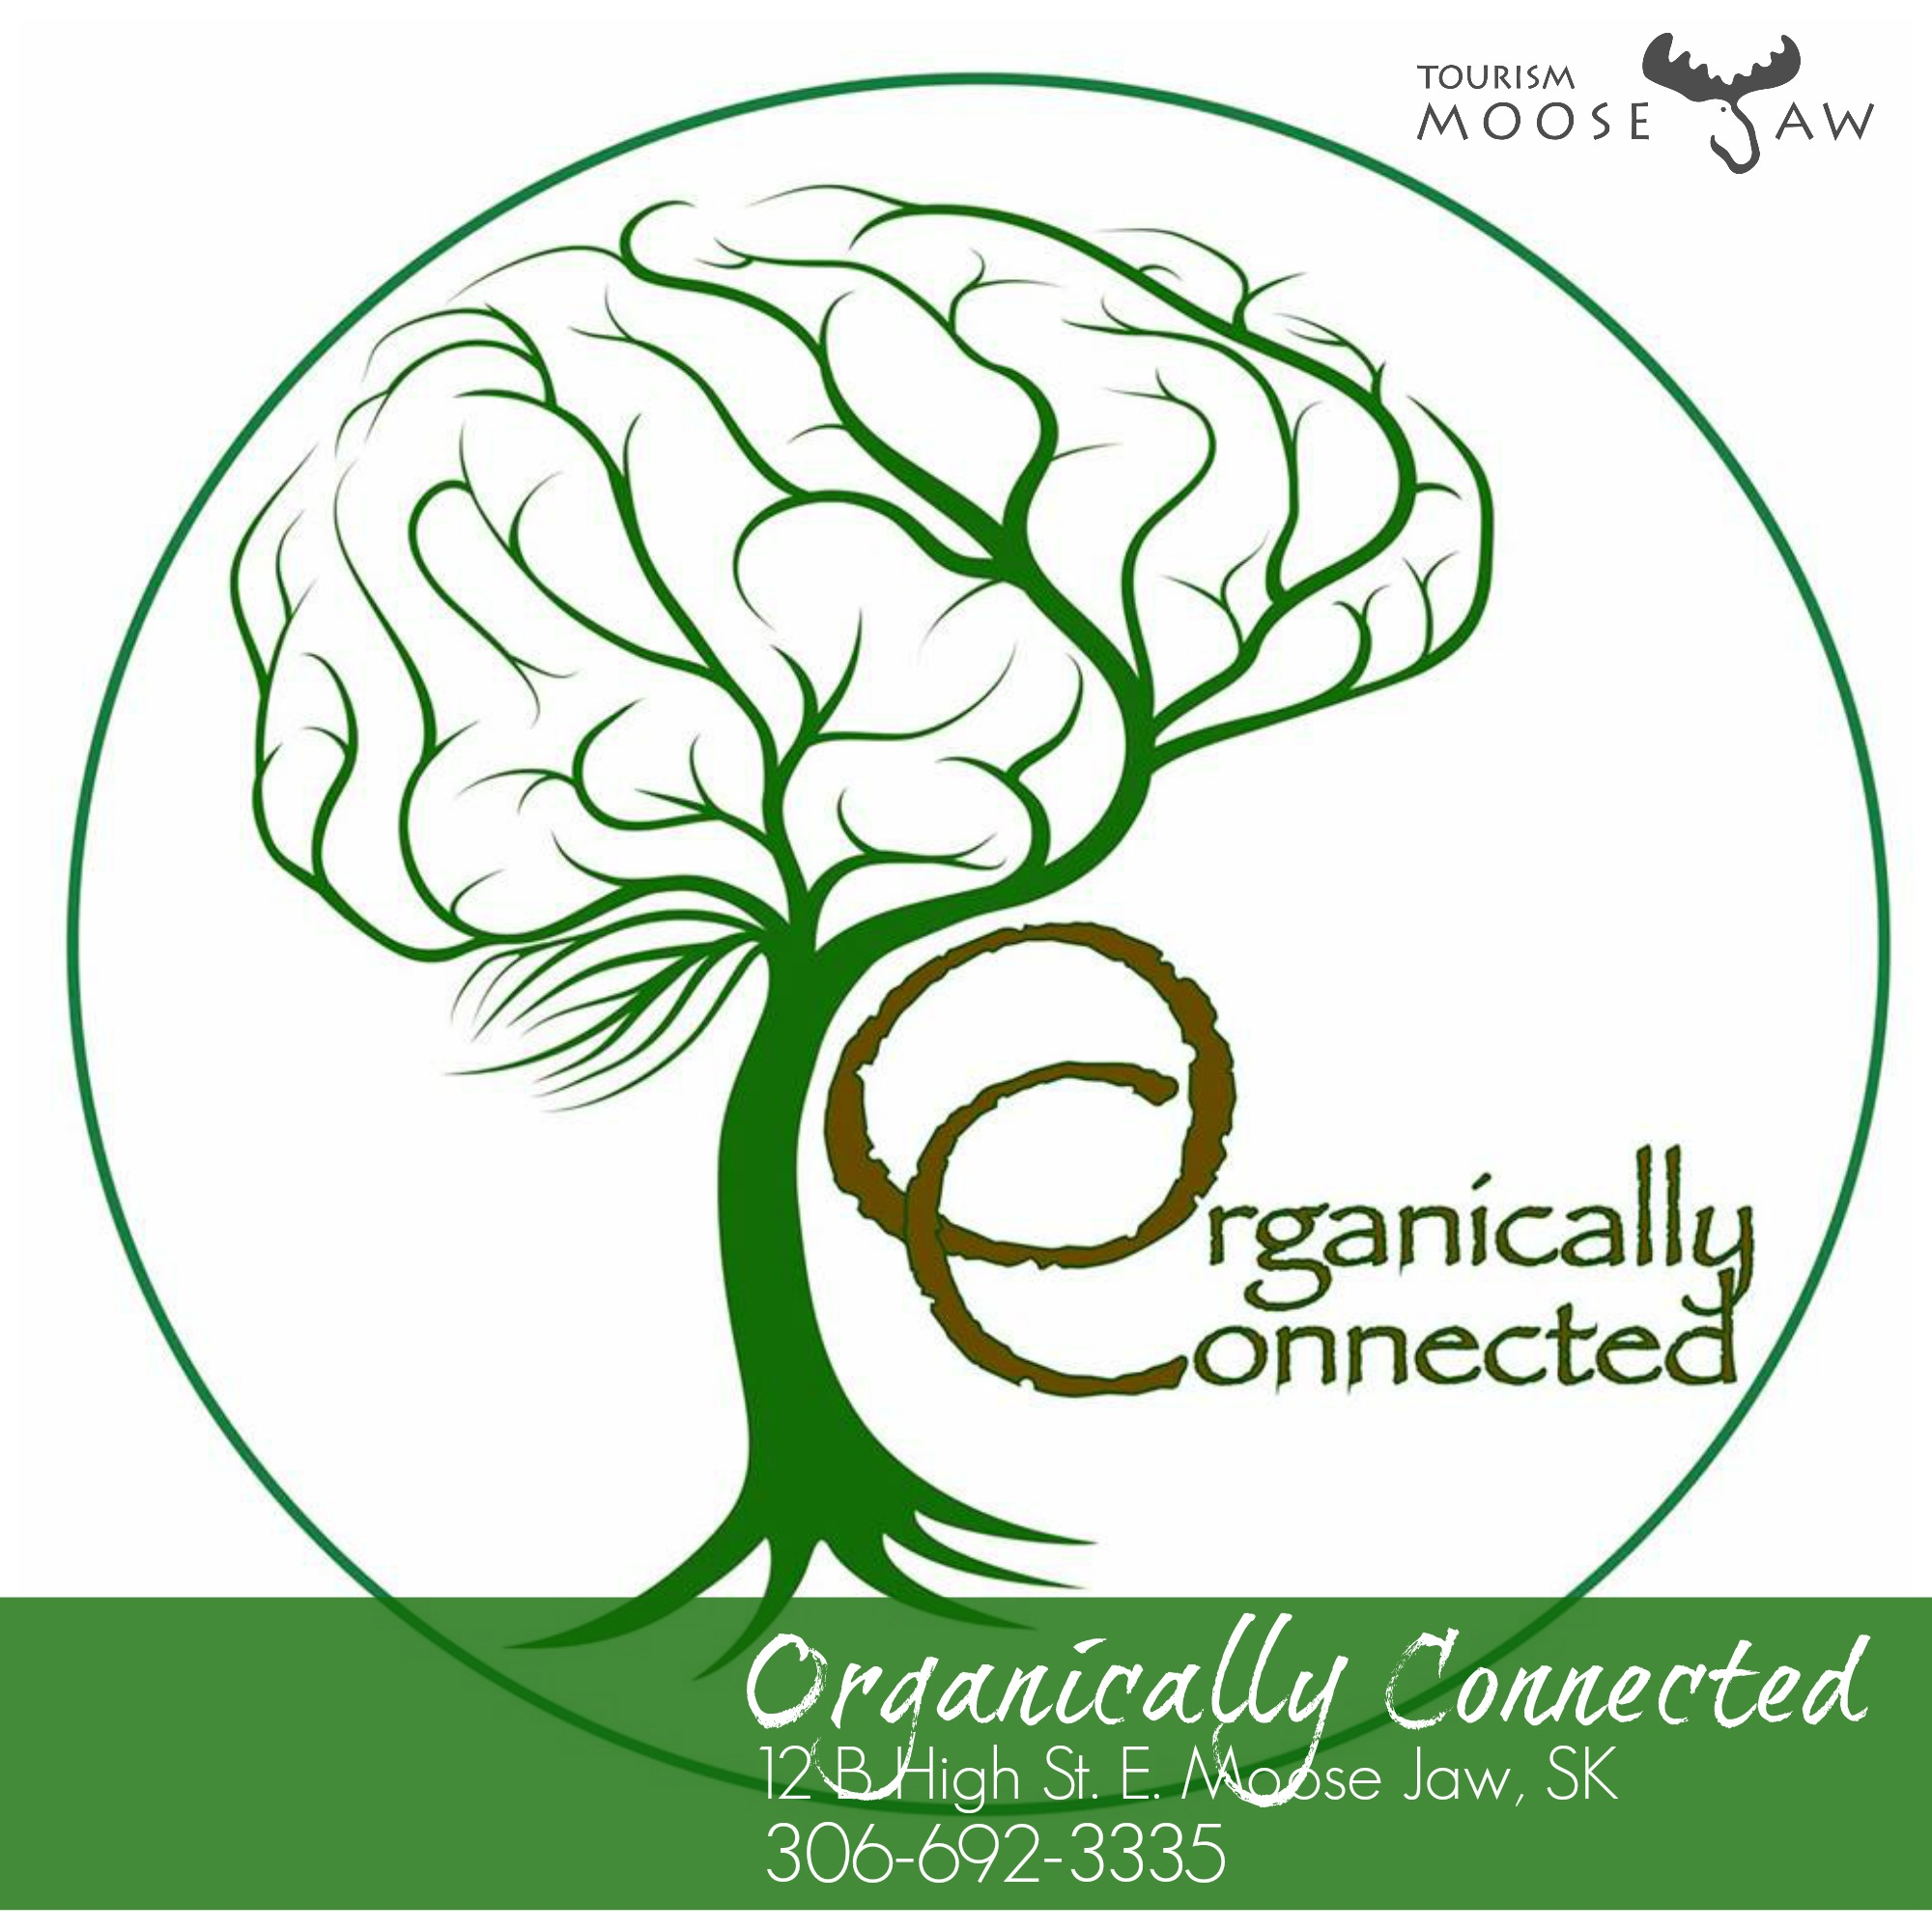 organically connected.jpg